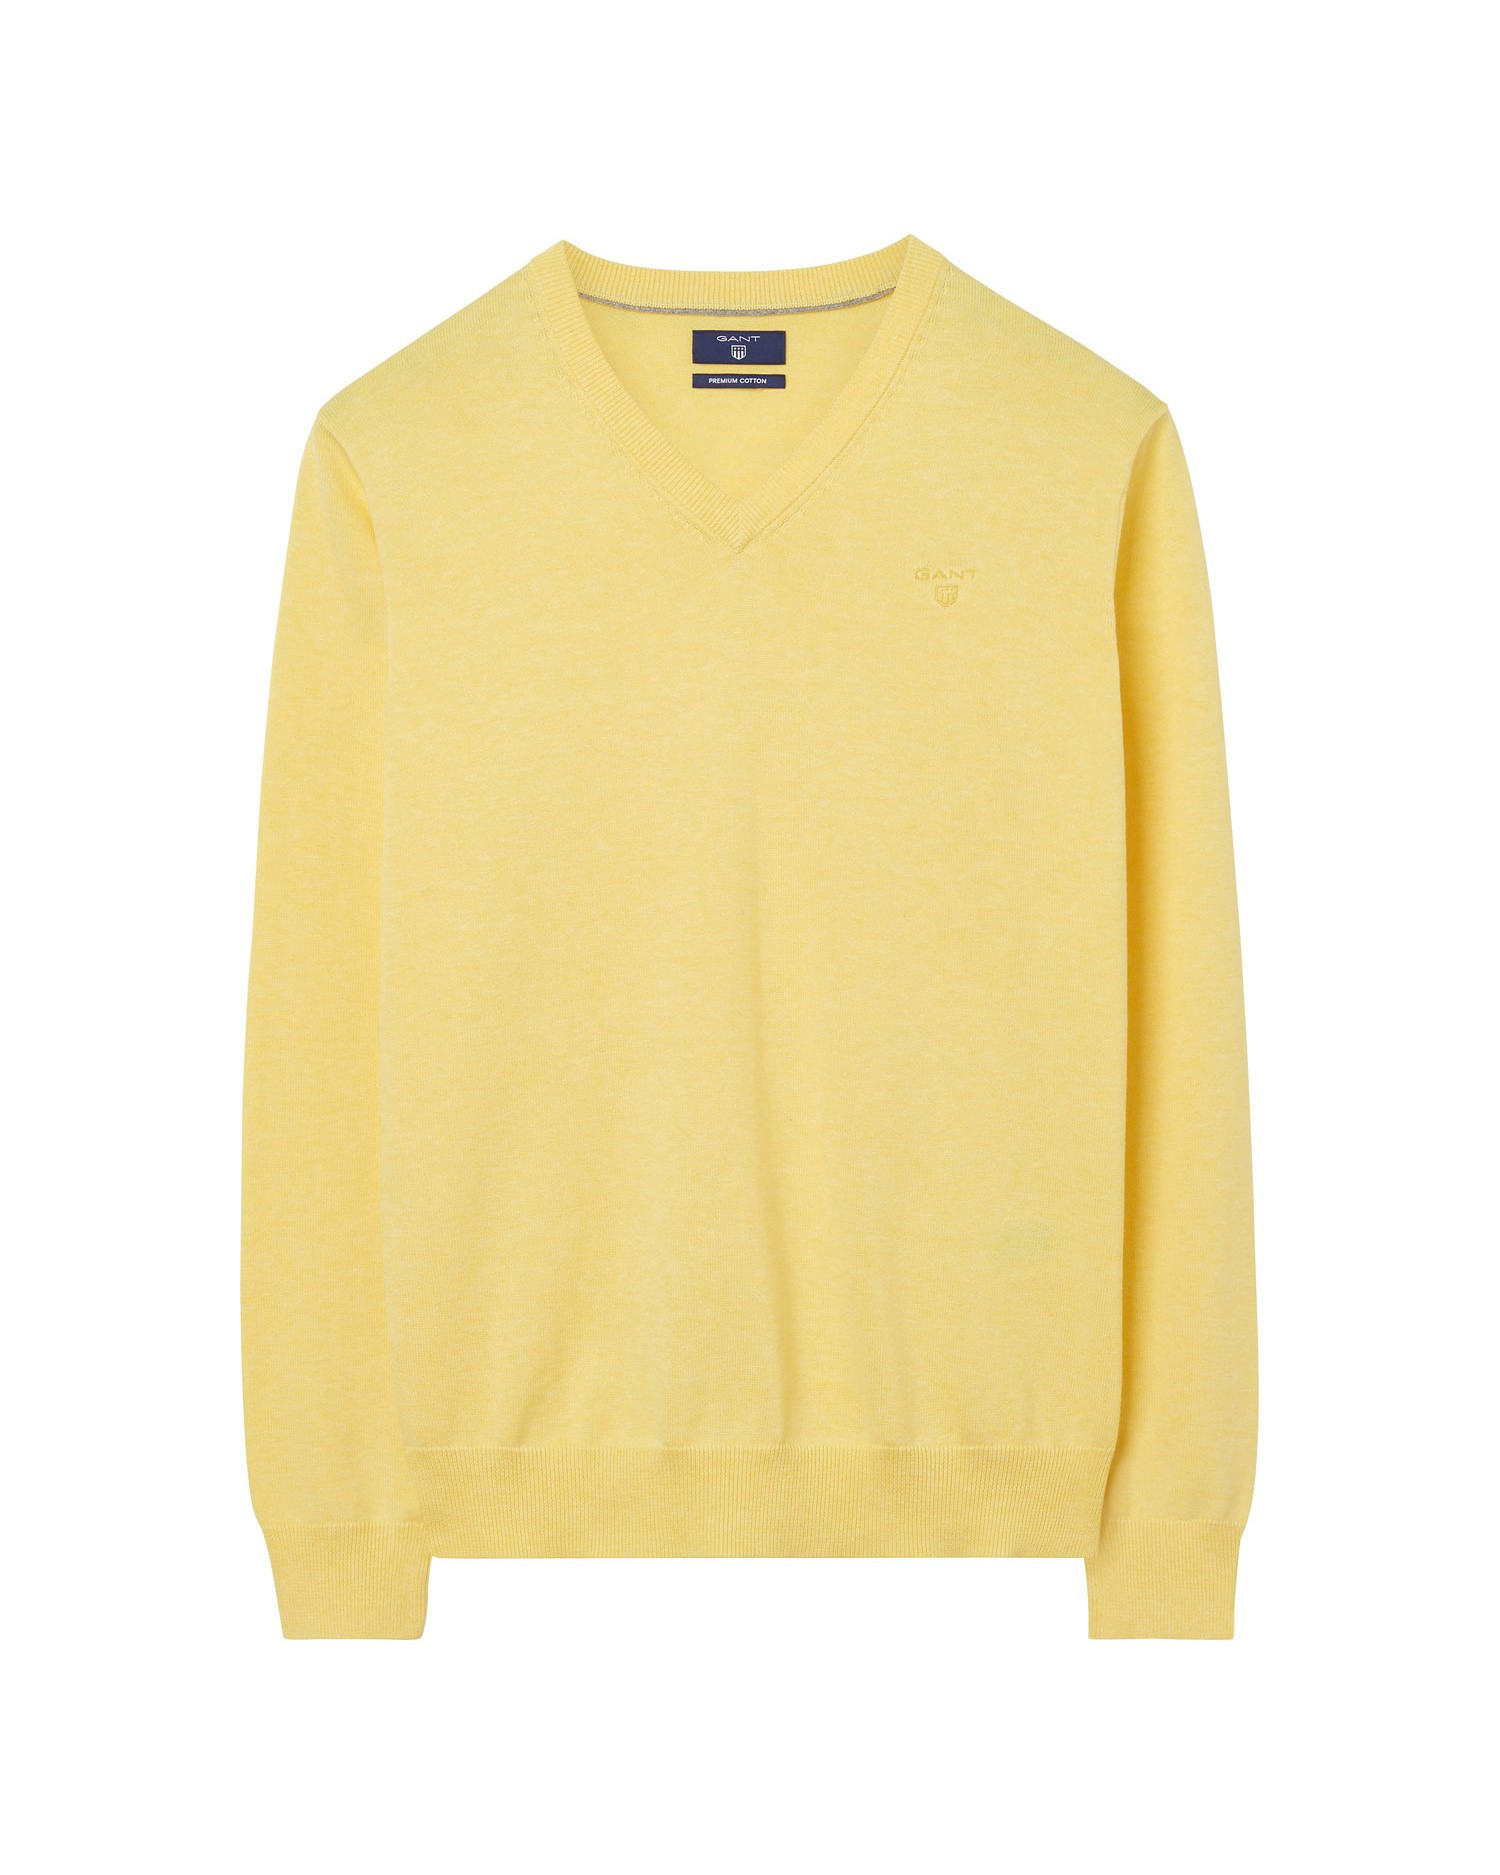 GANT Men's Sweater - 83072